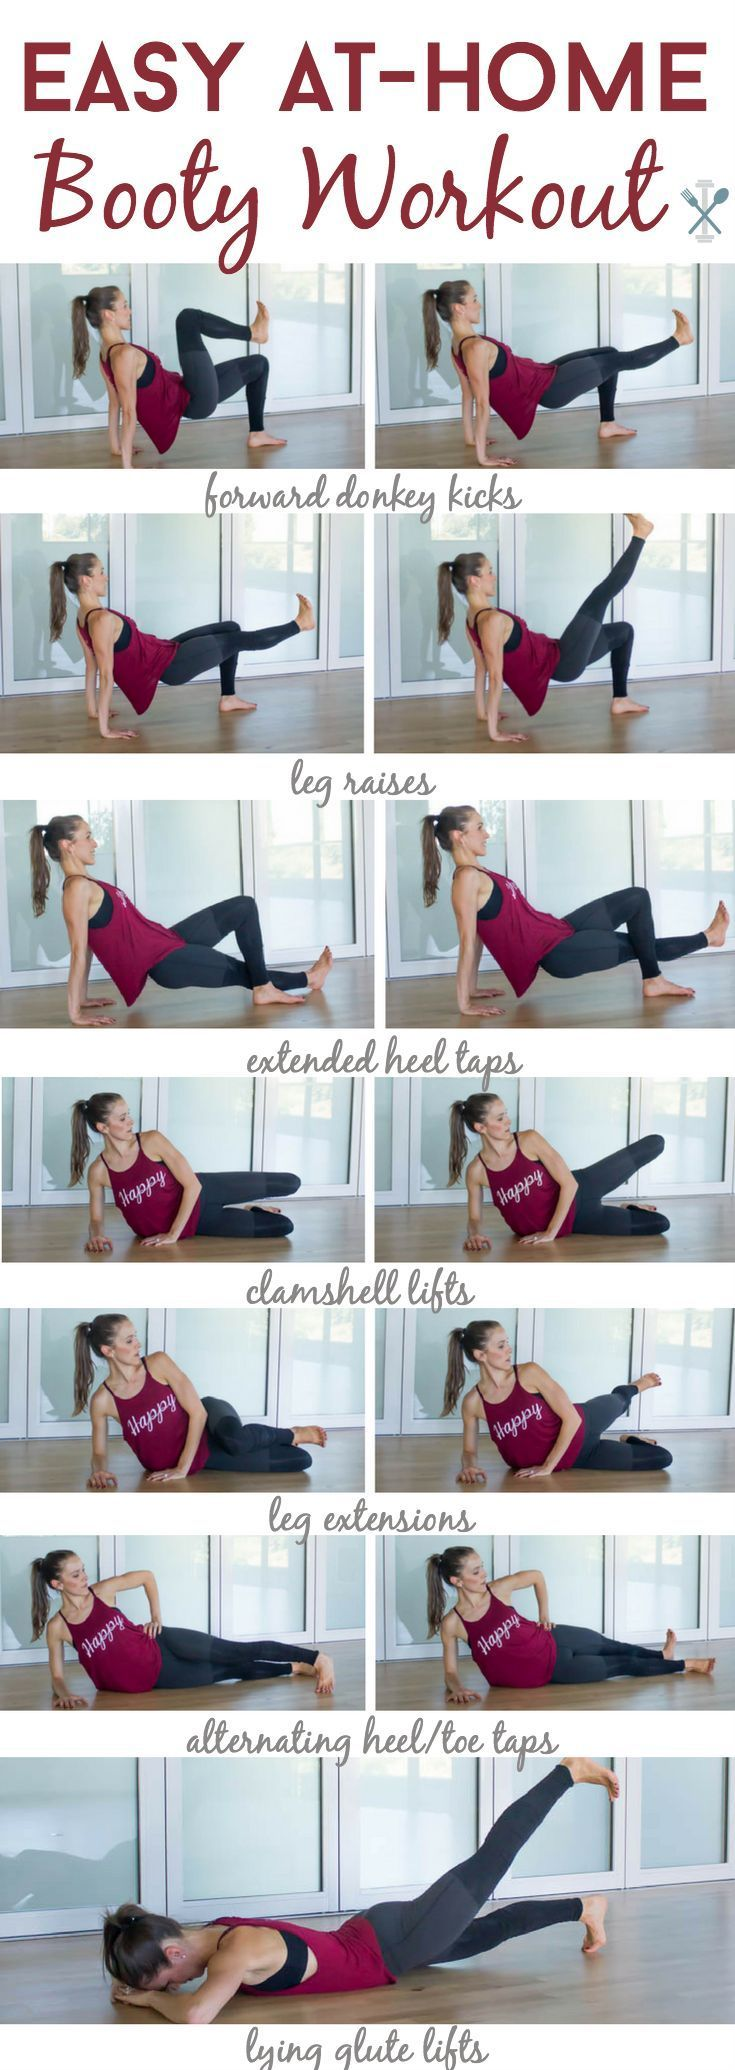 Easy Home Booty Workout – Inspiration and Fitness